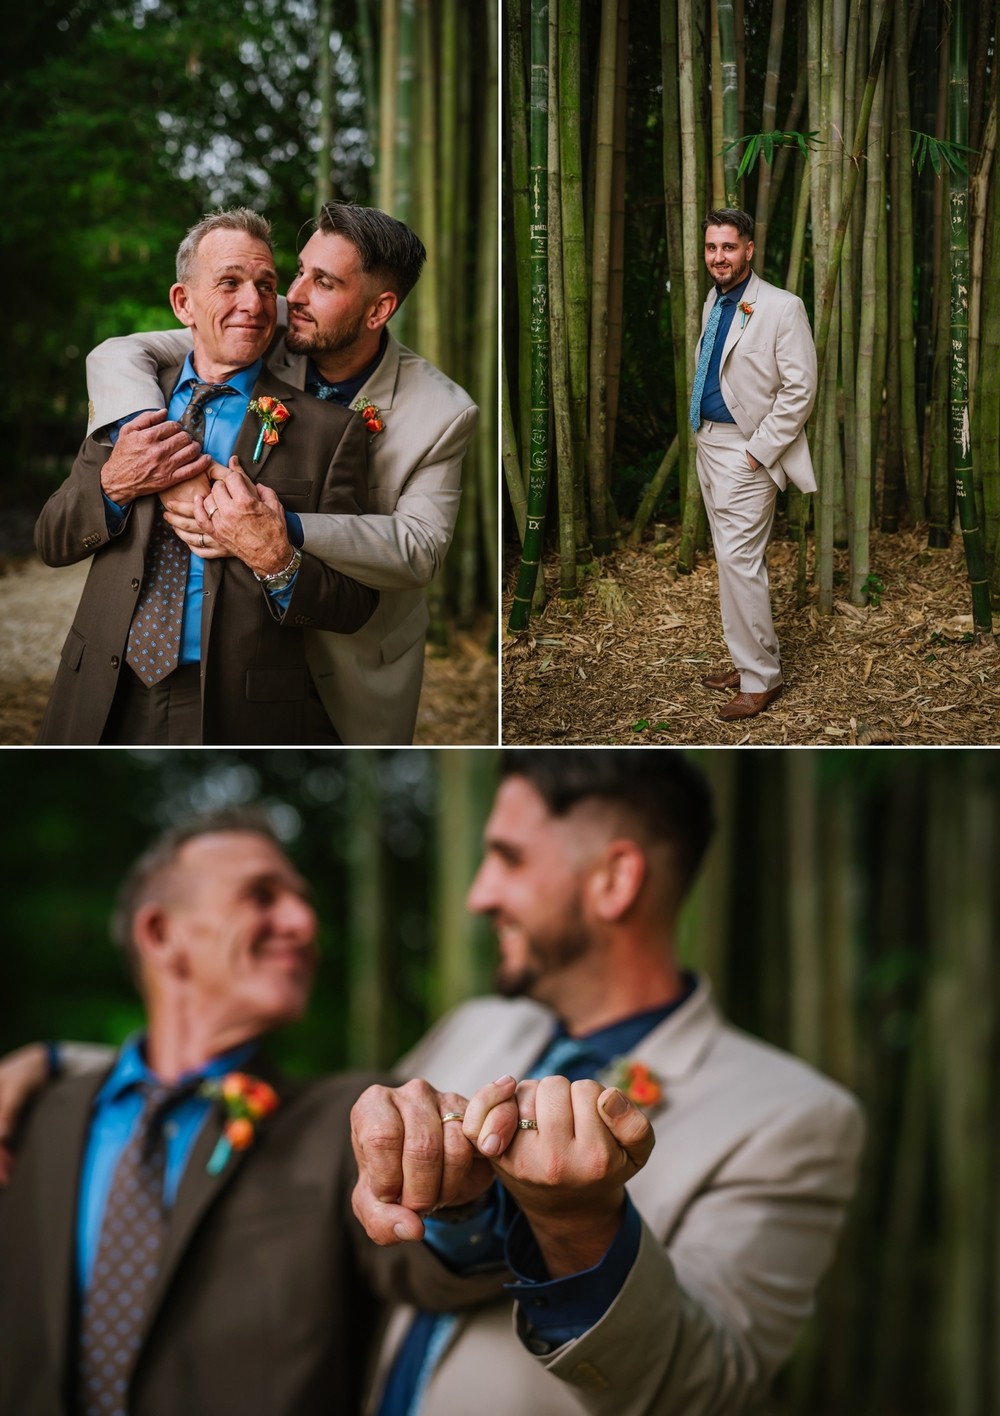 tampa-wedding-photographer-ashlee-hamon-lgbt-wedding_0009.jpg